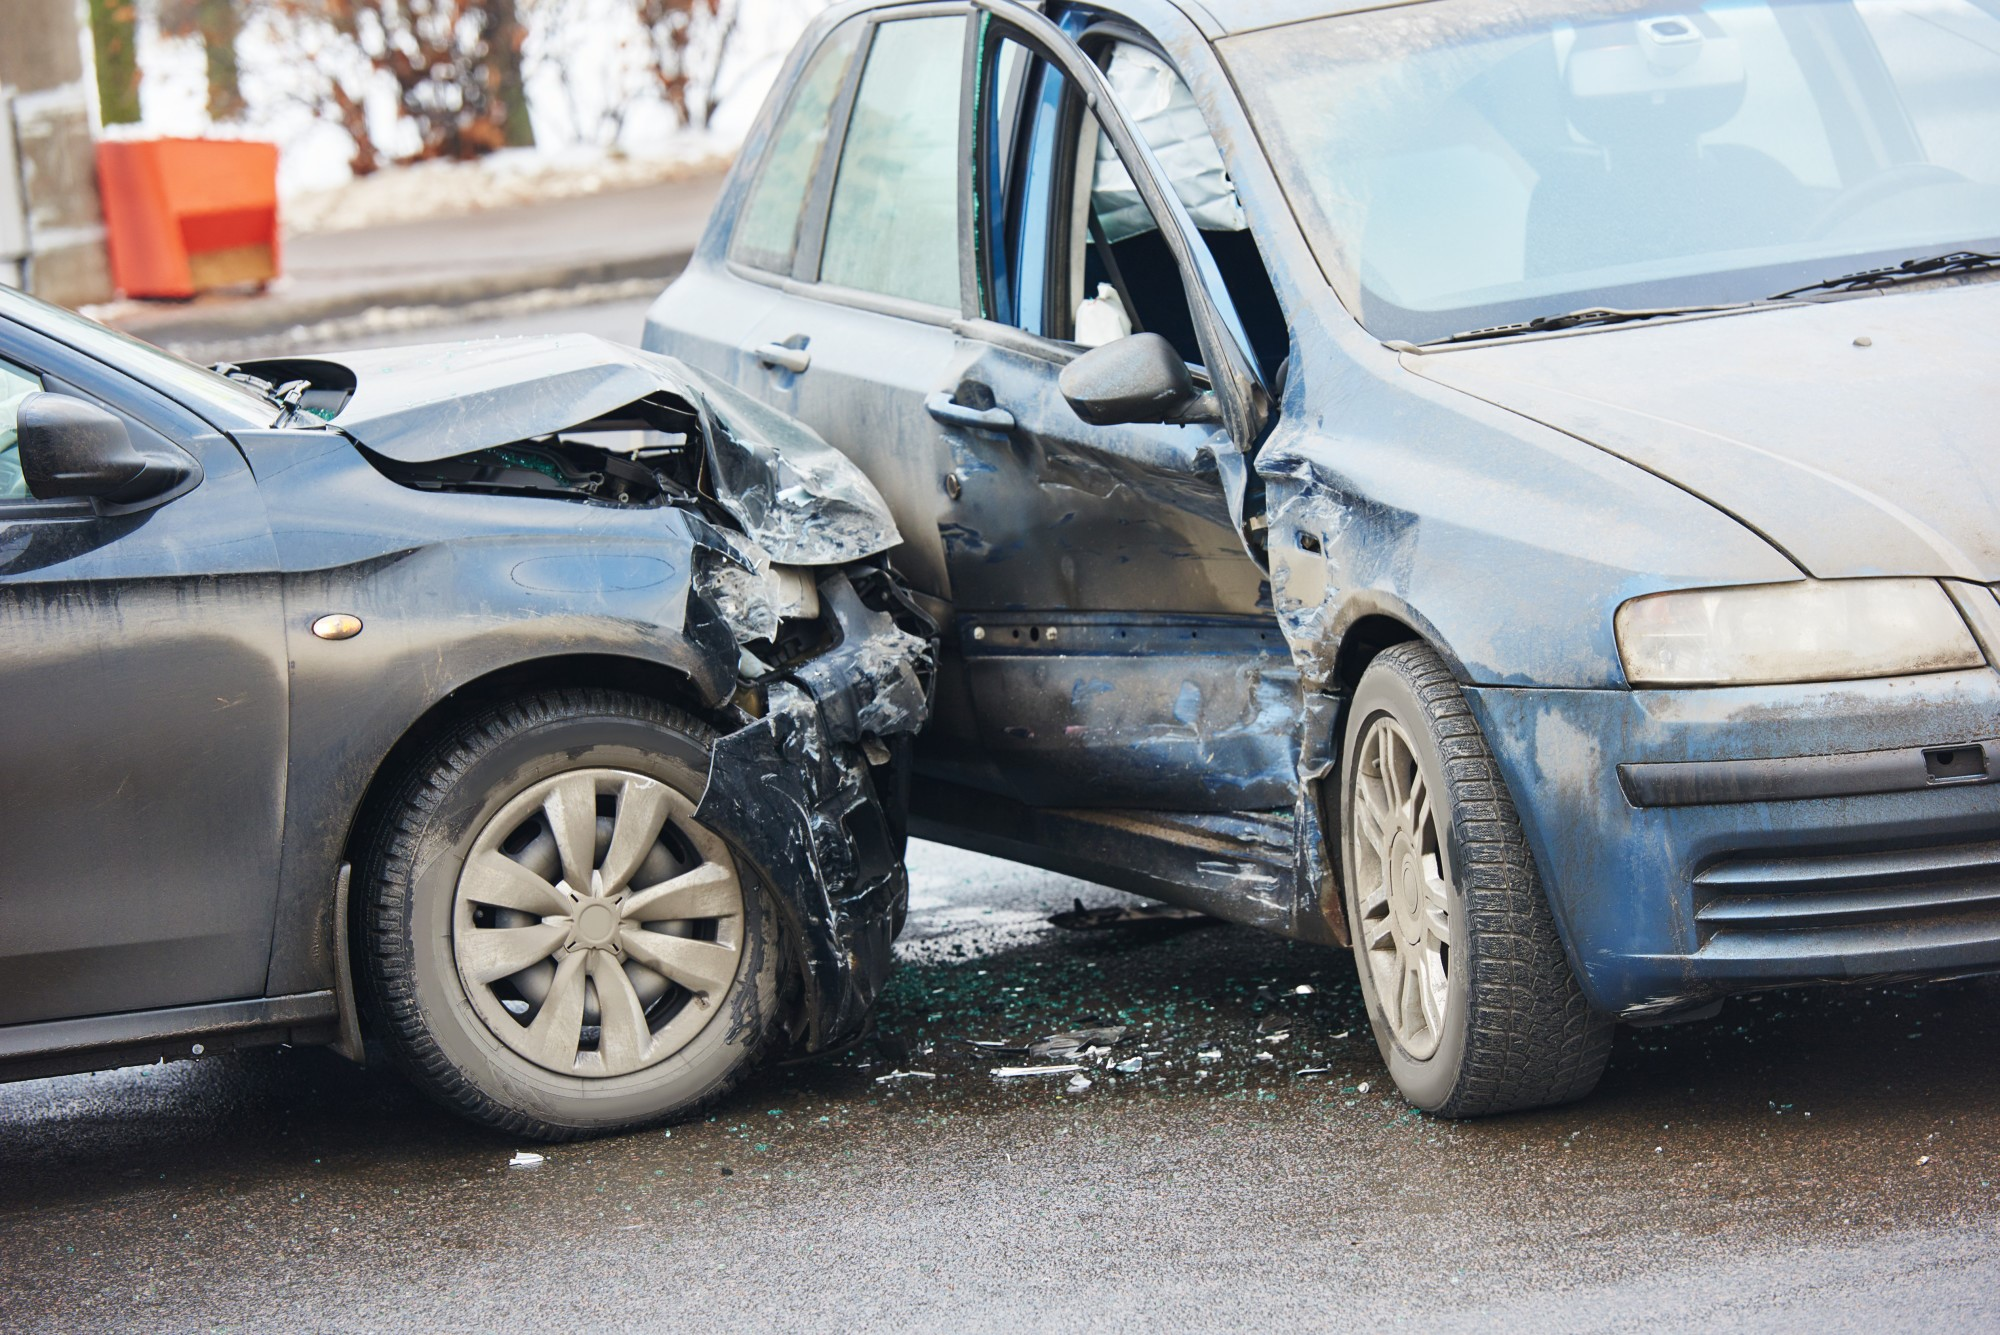 What to Do When You Sustain Minor Car Accident Injuries - WFMJ.com